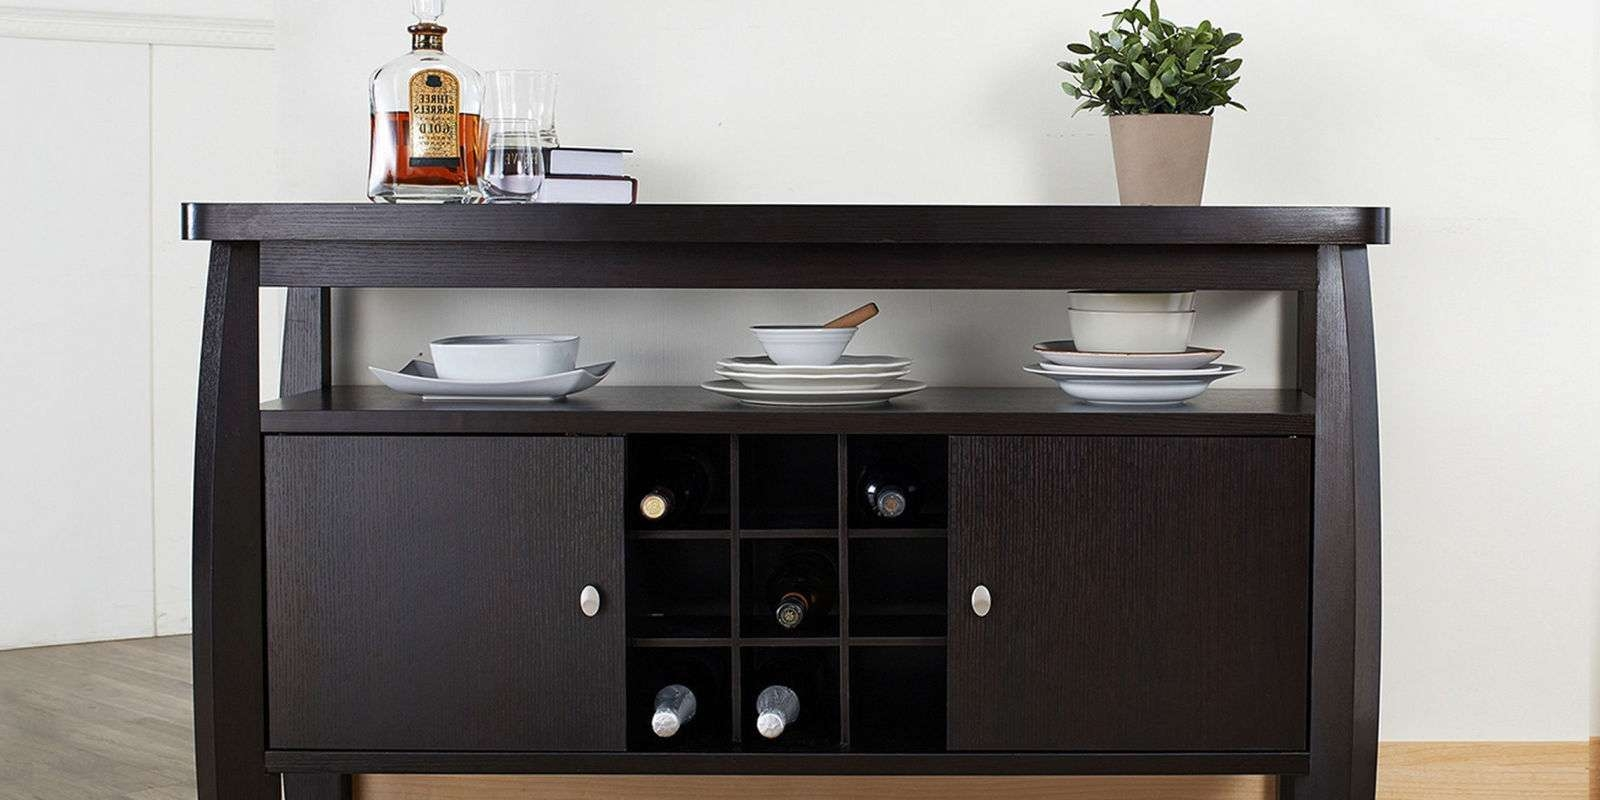 11 Best Sideboards And Buffets In 2018 – Reviews Of Sideboards Pertaining To Espresso Sideboards (View 1 of 20)